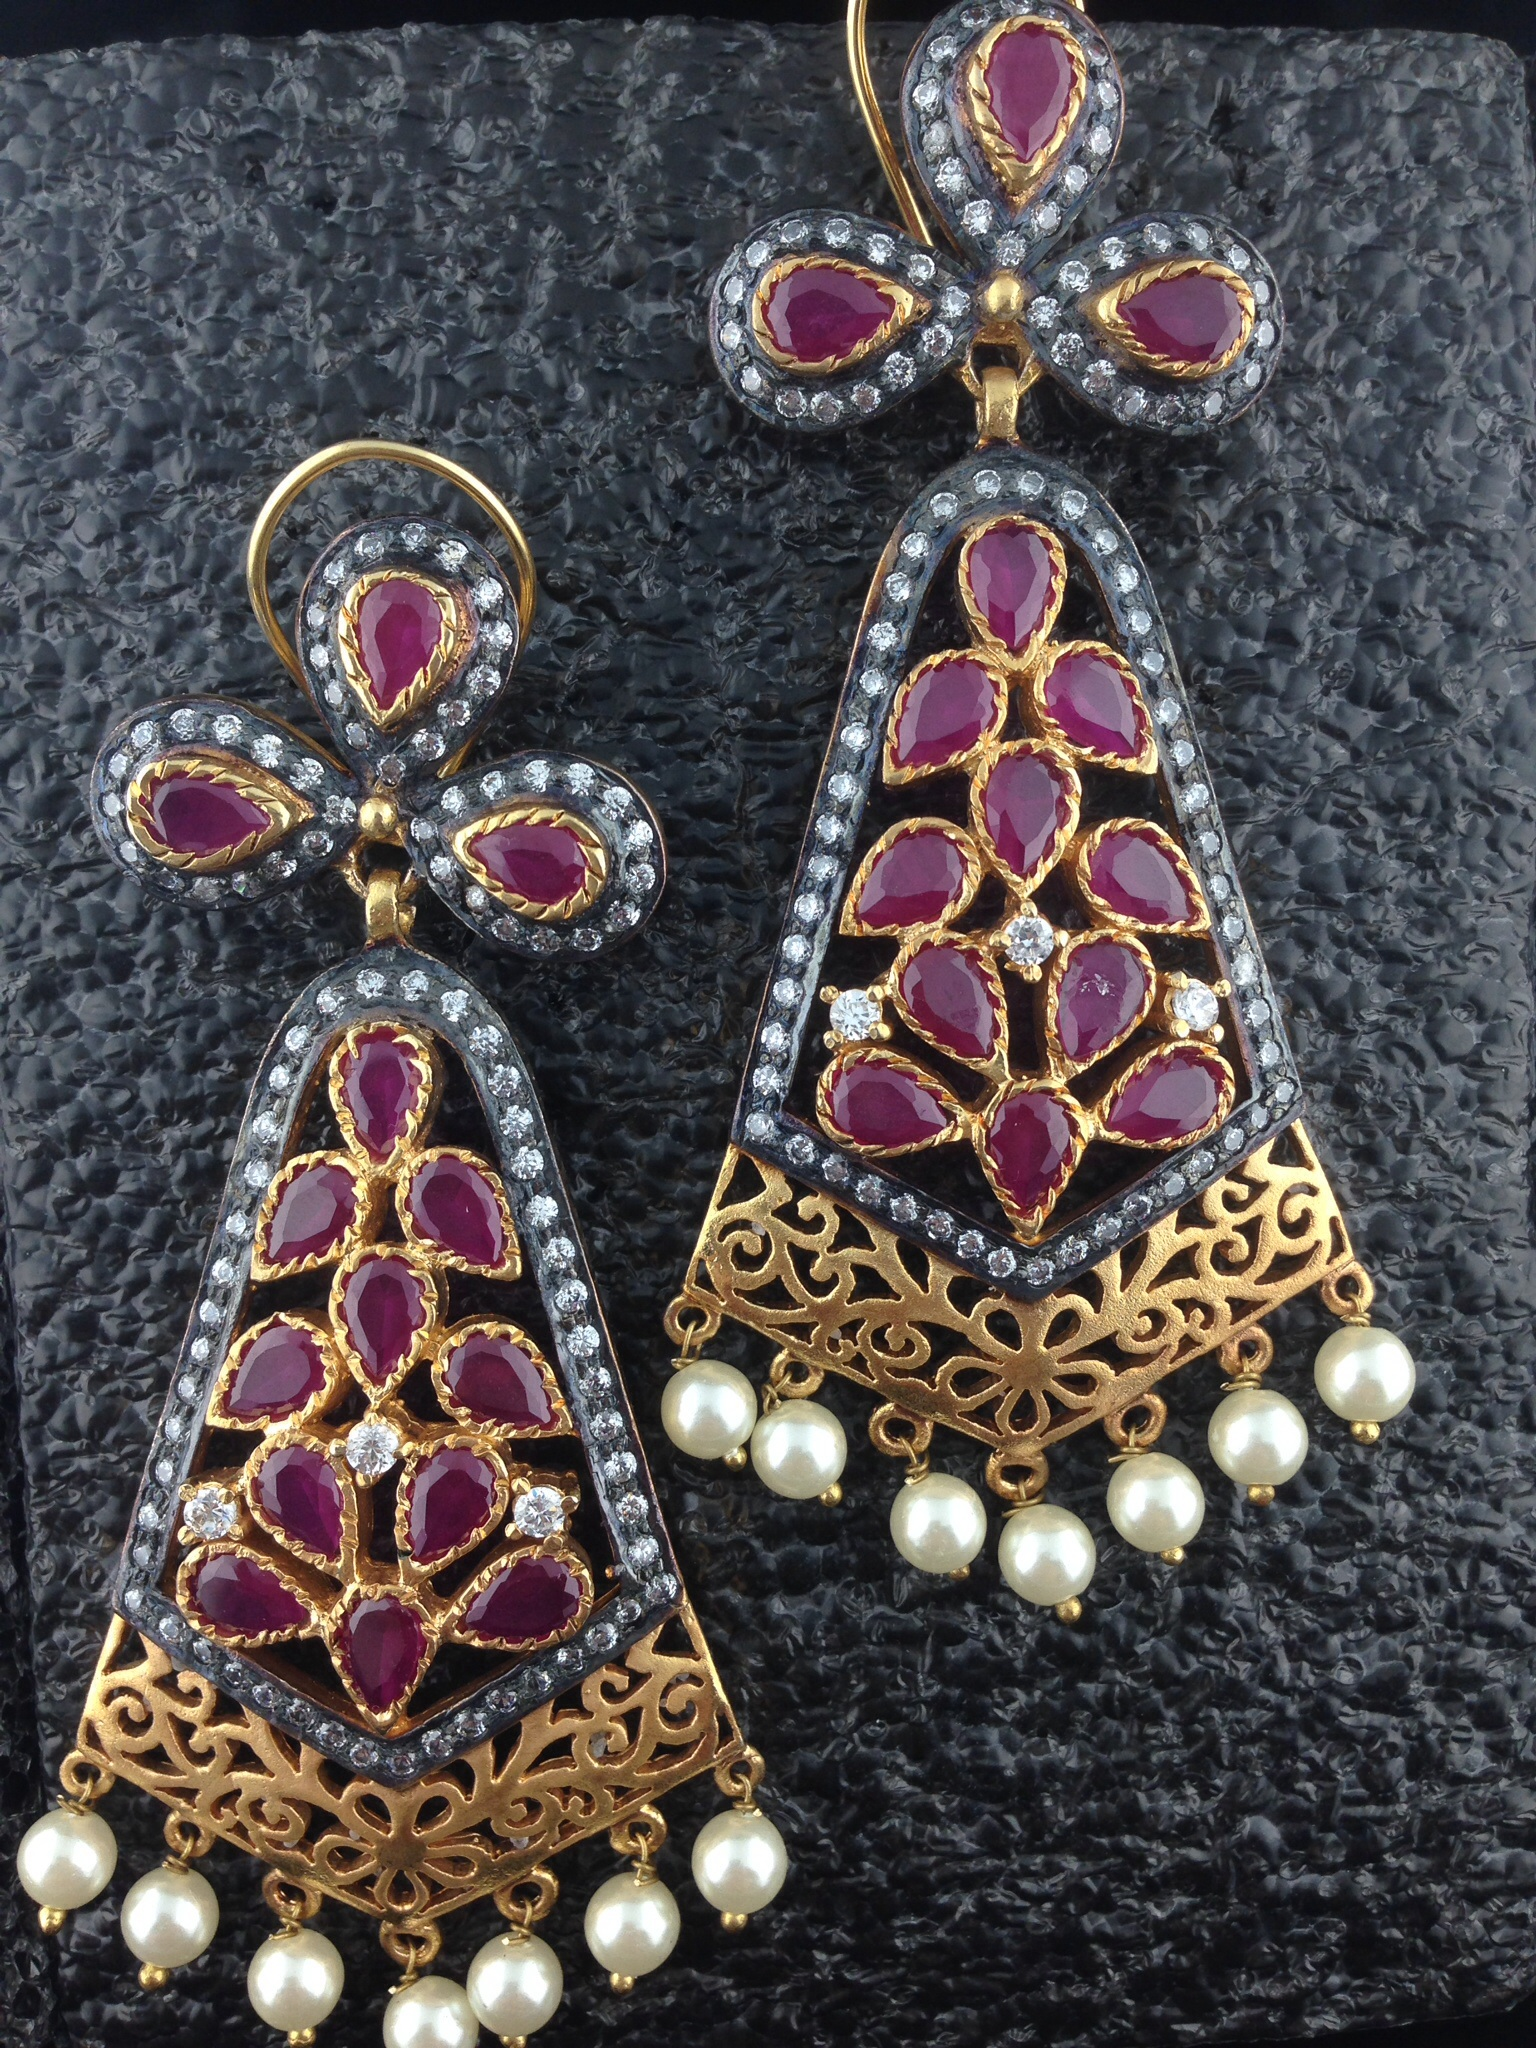 CZ Designer Earrings With Pink Sapphire And Pearls